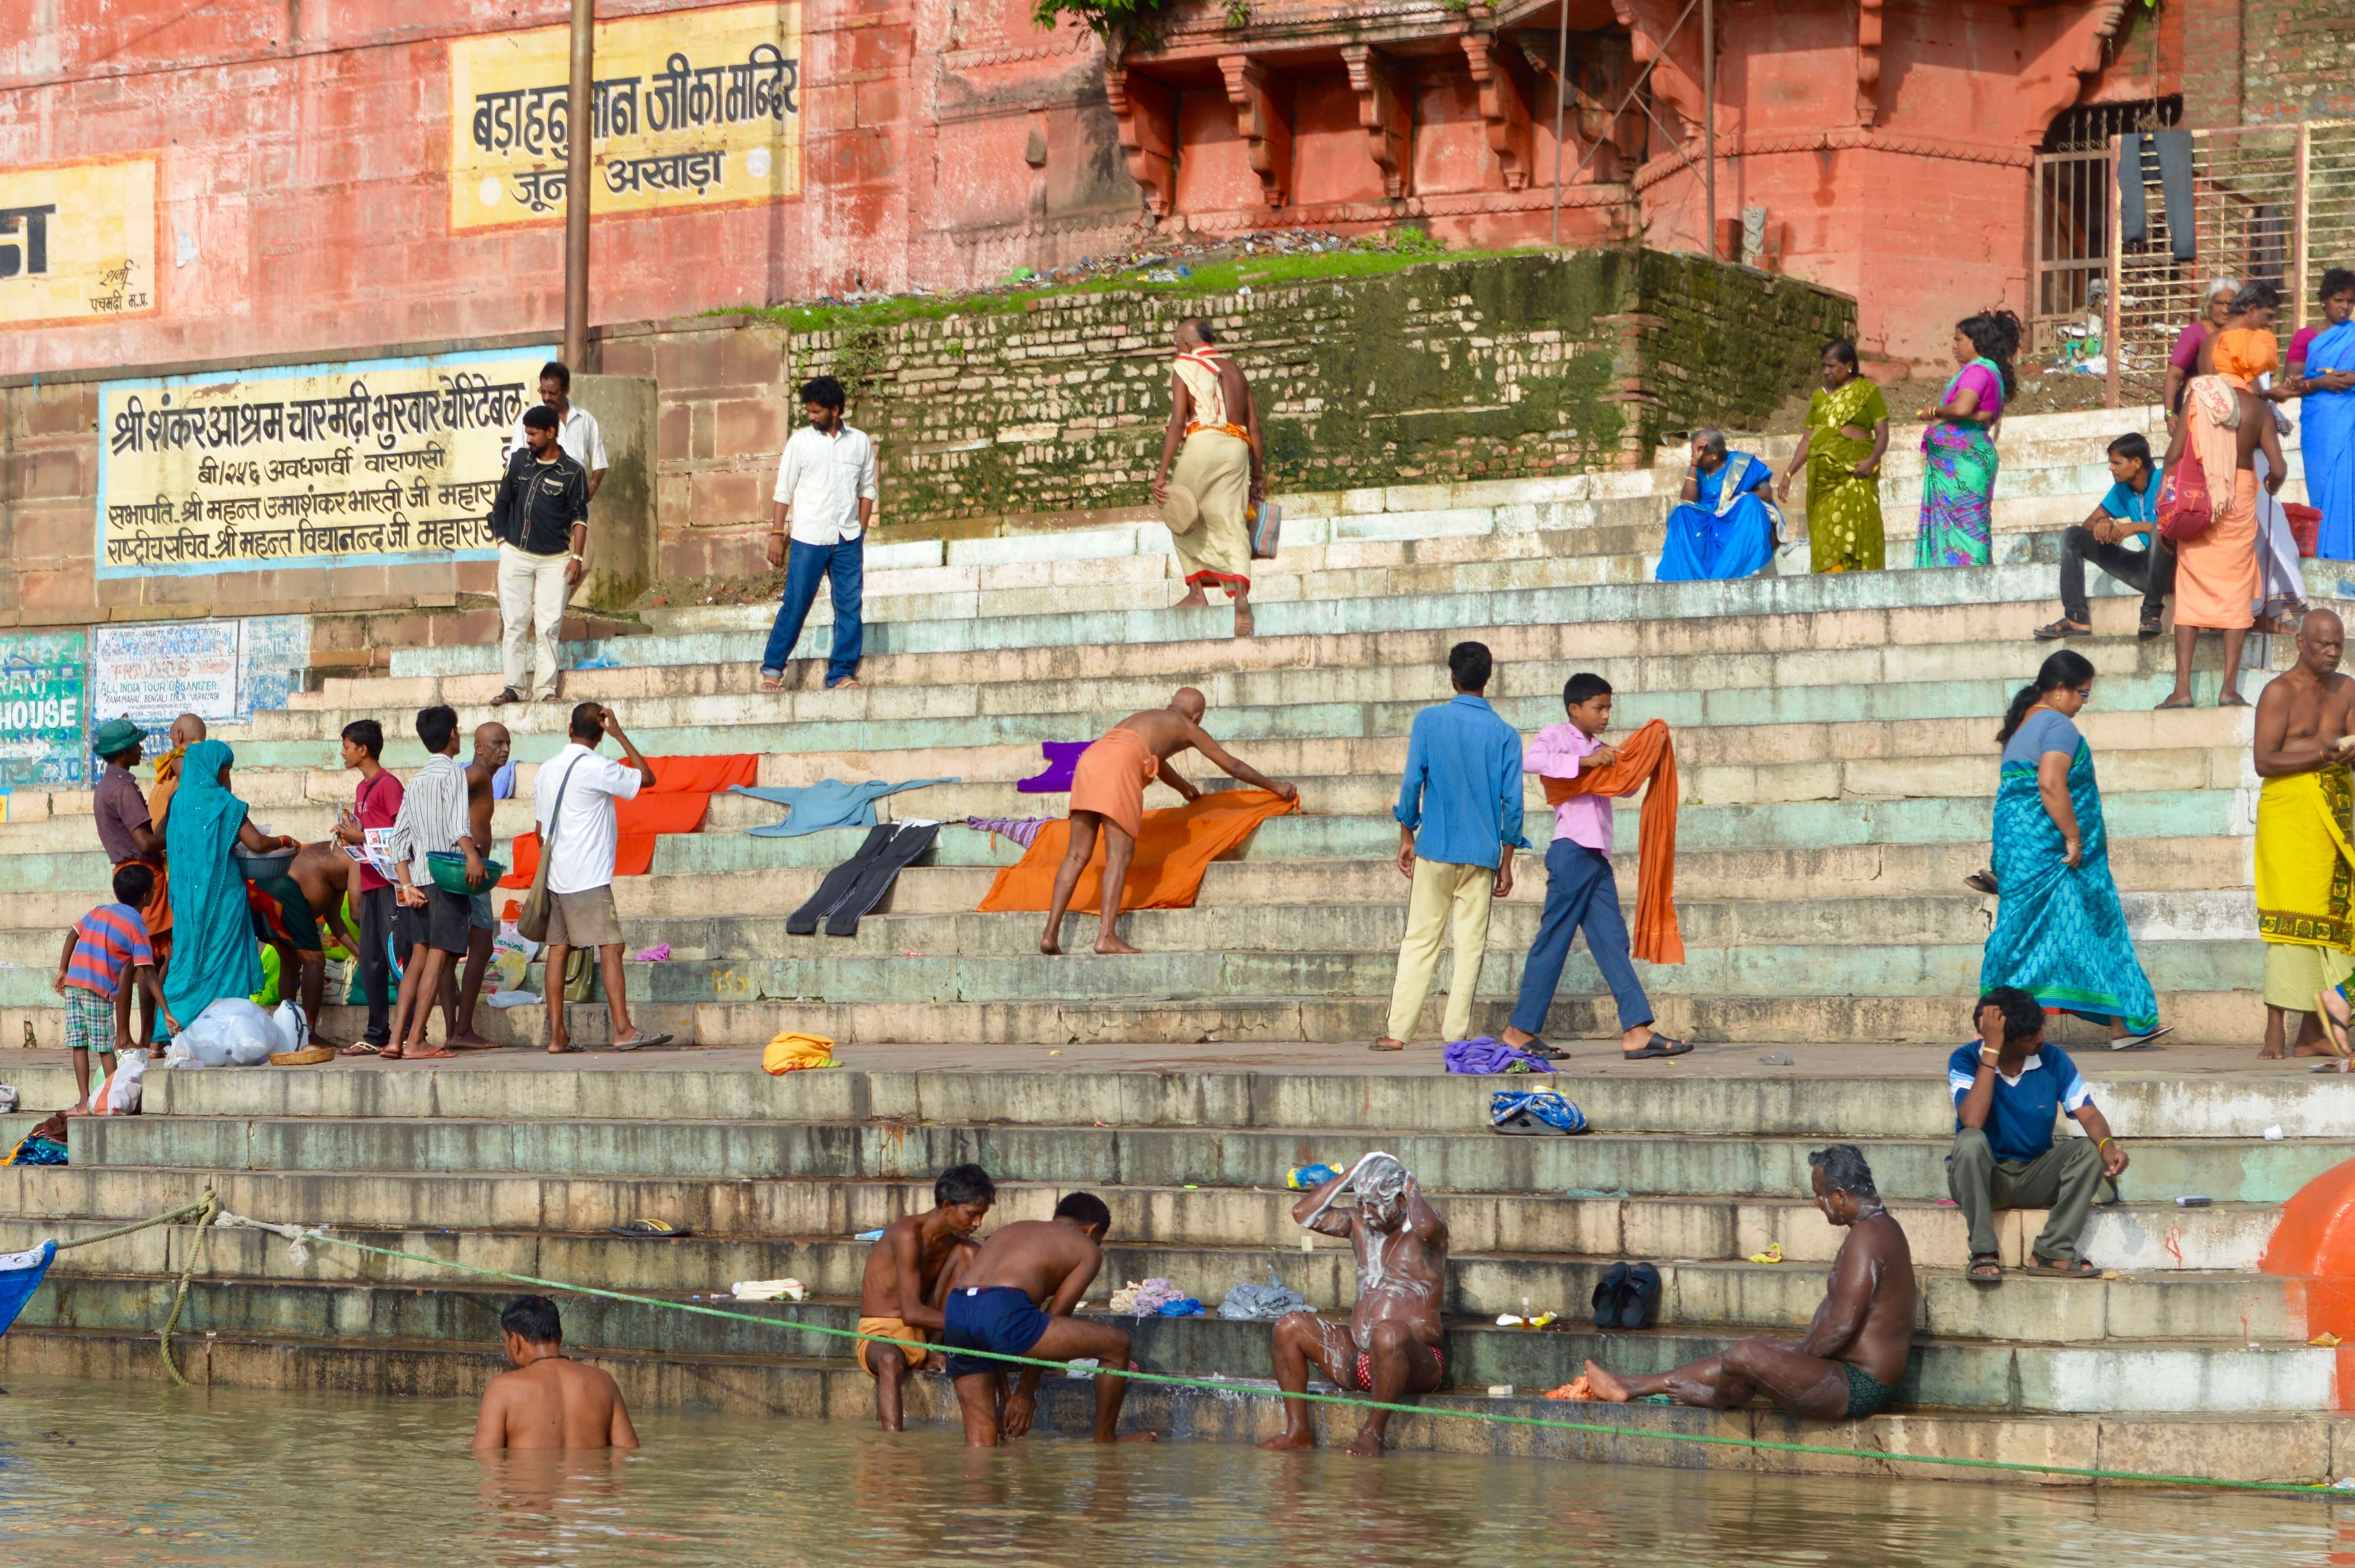 People washing clothes and living their everyday life on the edge of the Ganges River